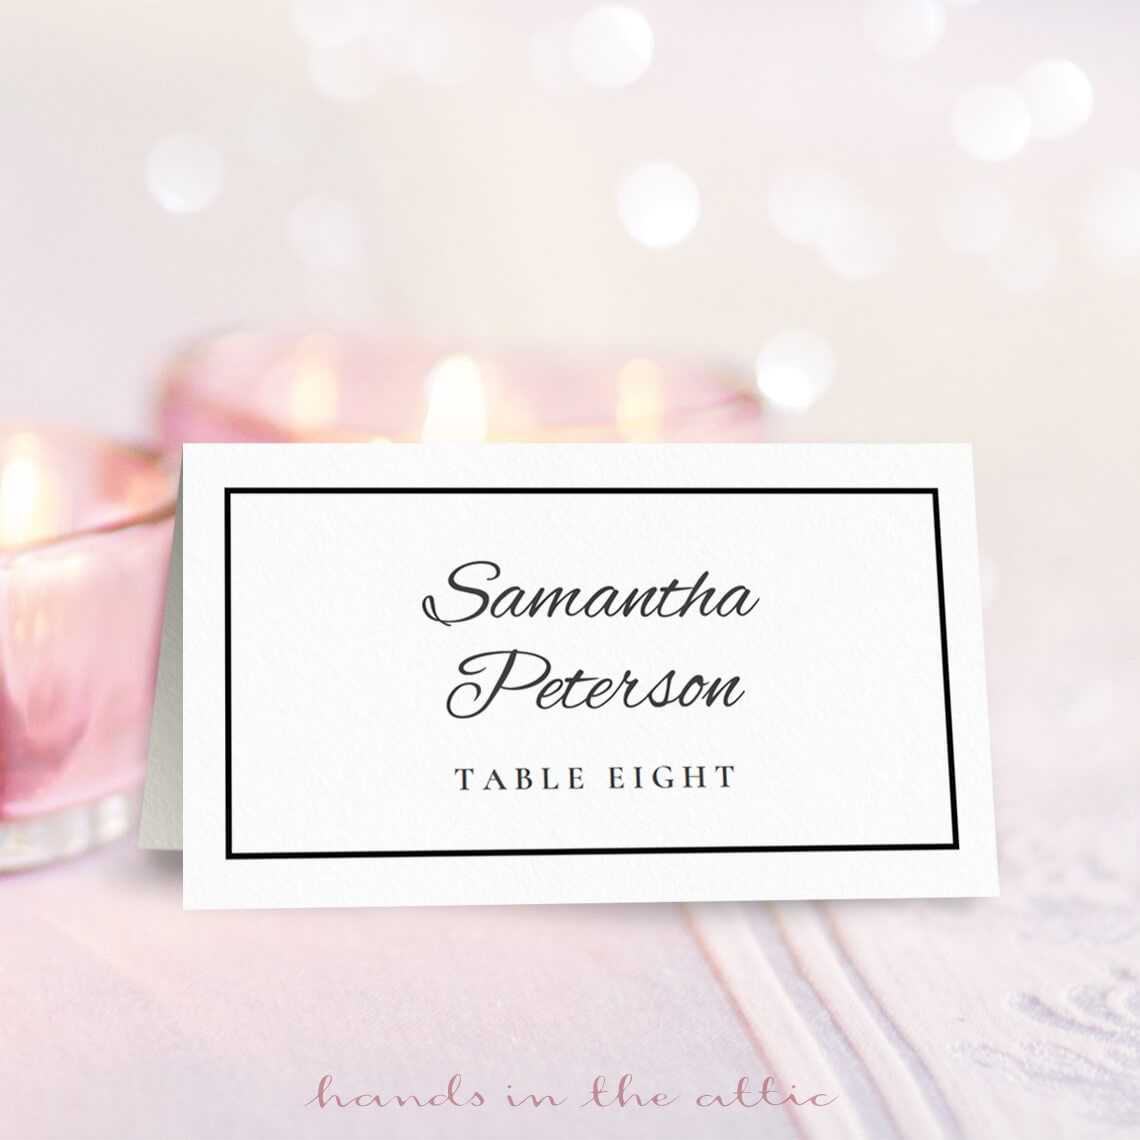 Wedding Place Card Template | Free On Handsintheattic Intended For Wedding Place Card Template Free Word